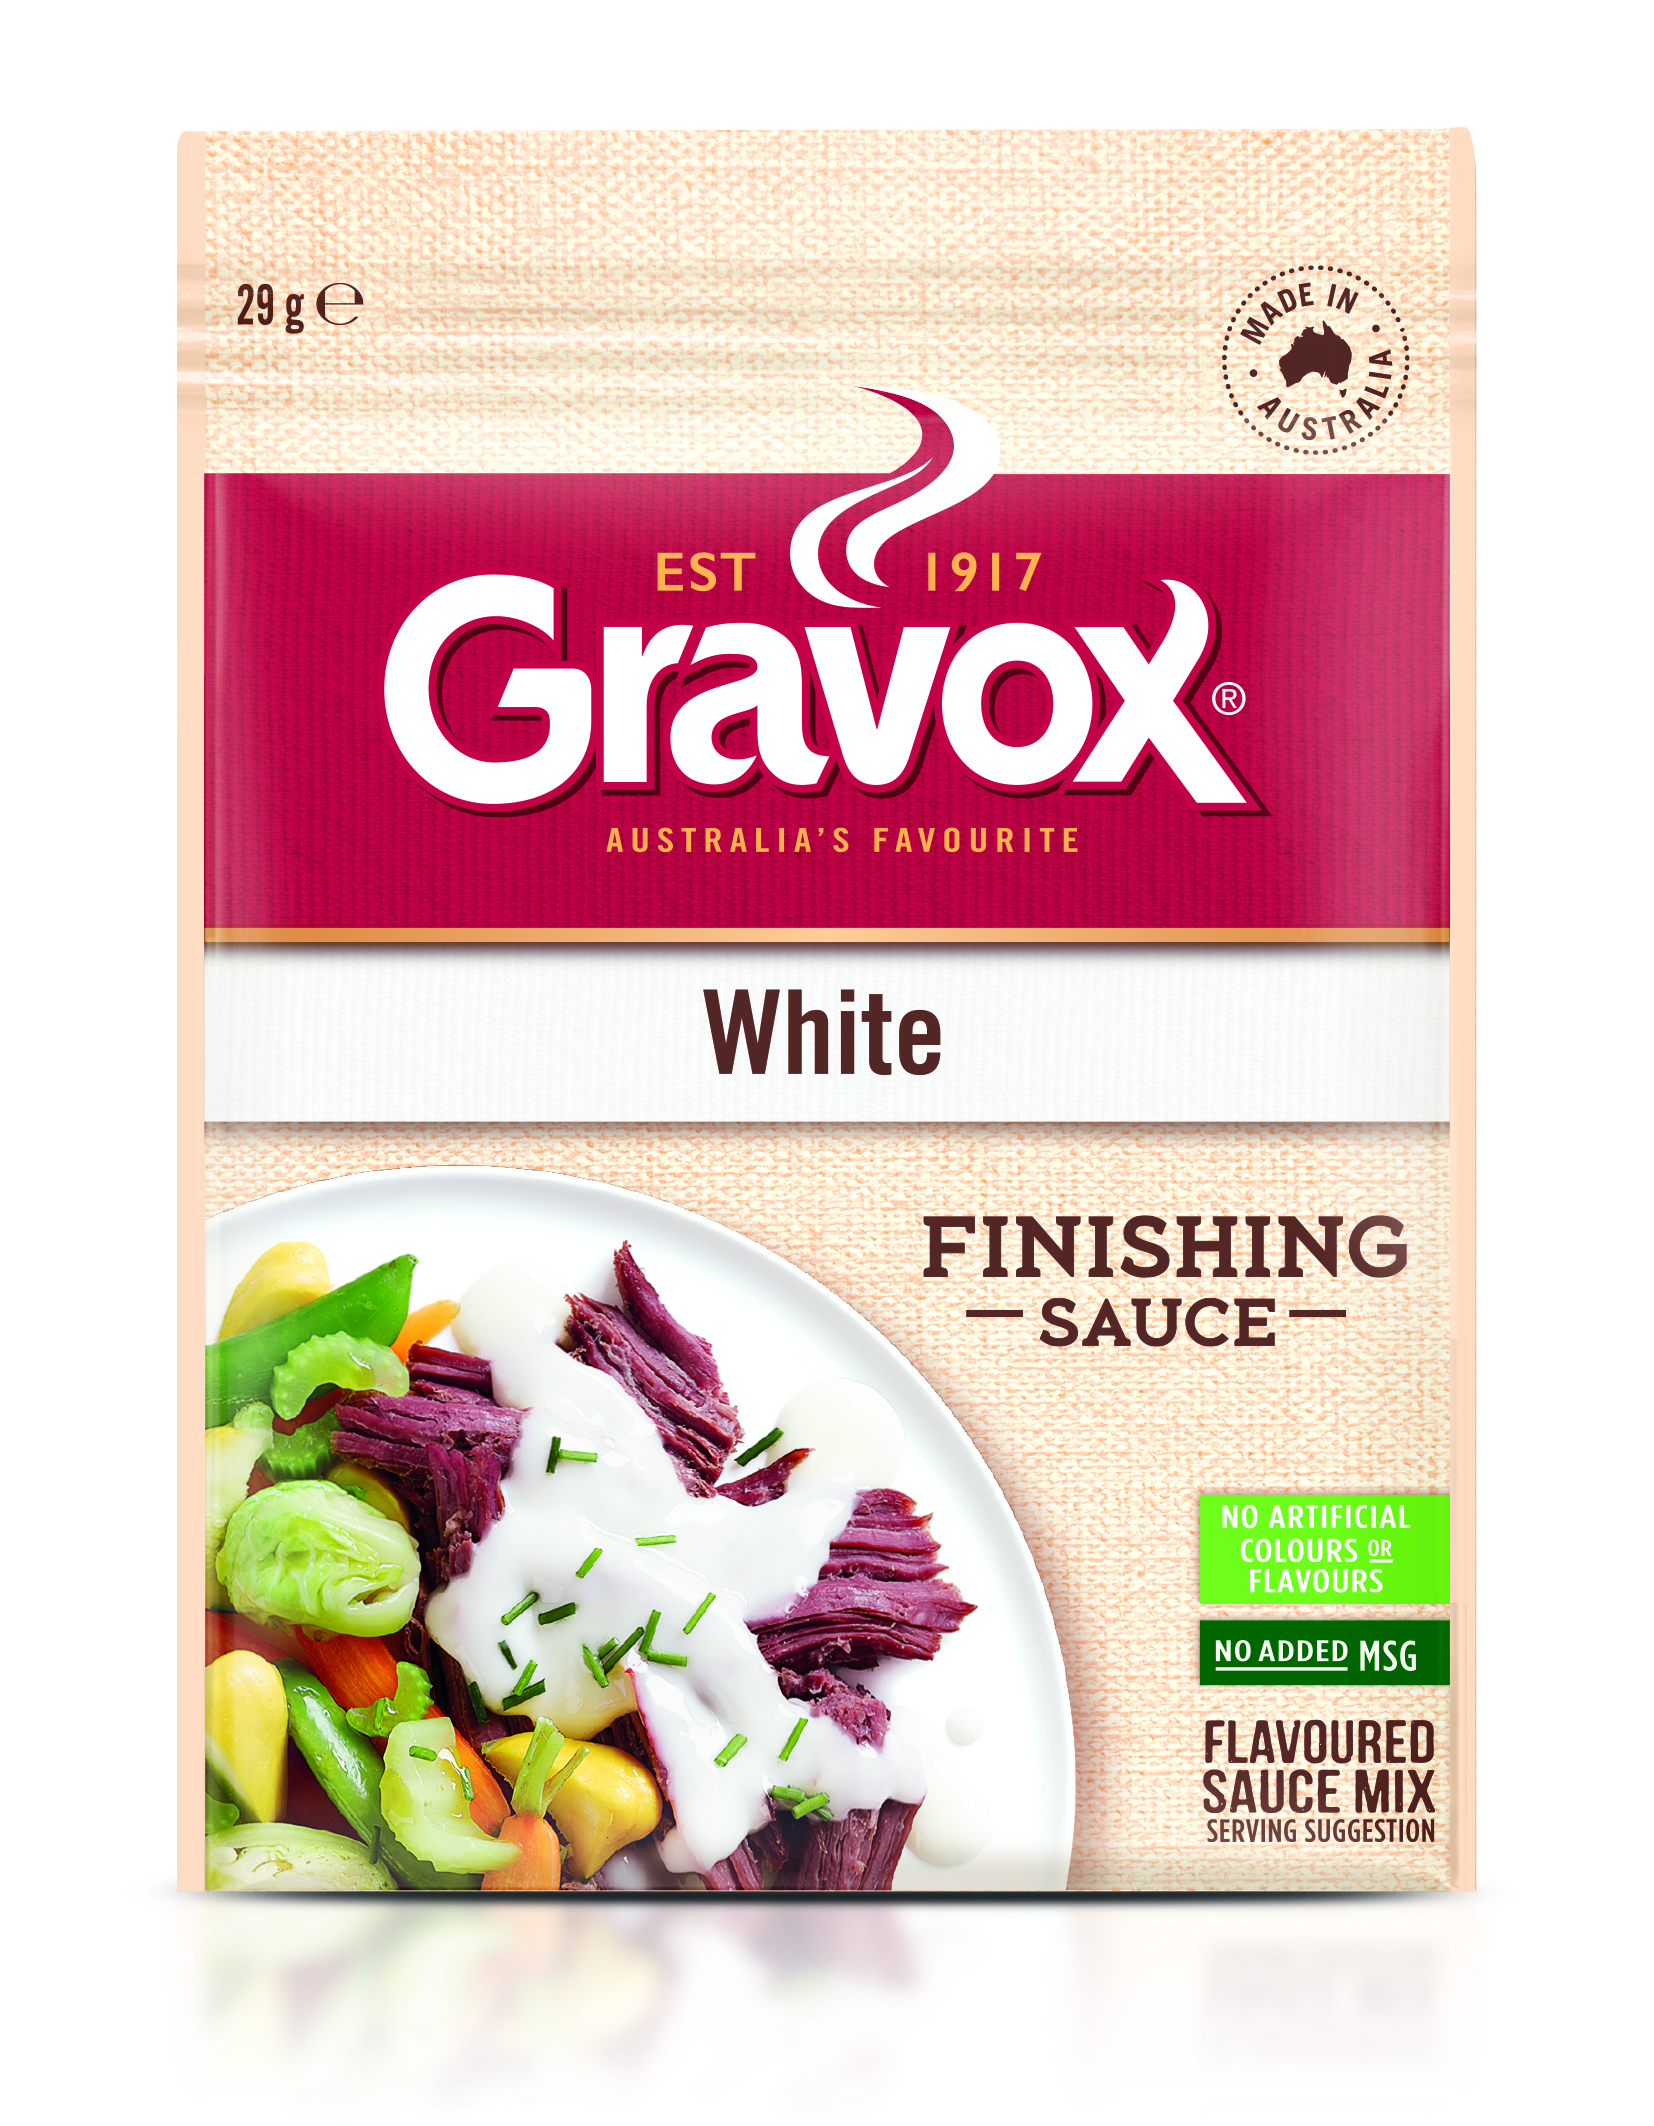 White Finishing Sauce 29g